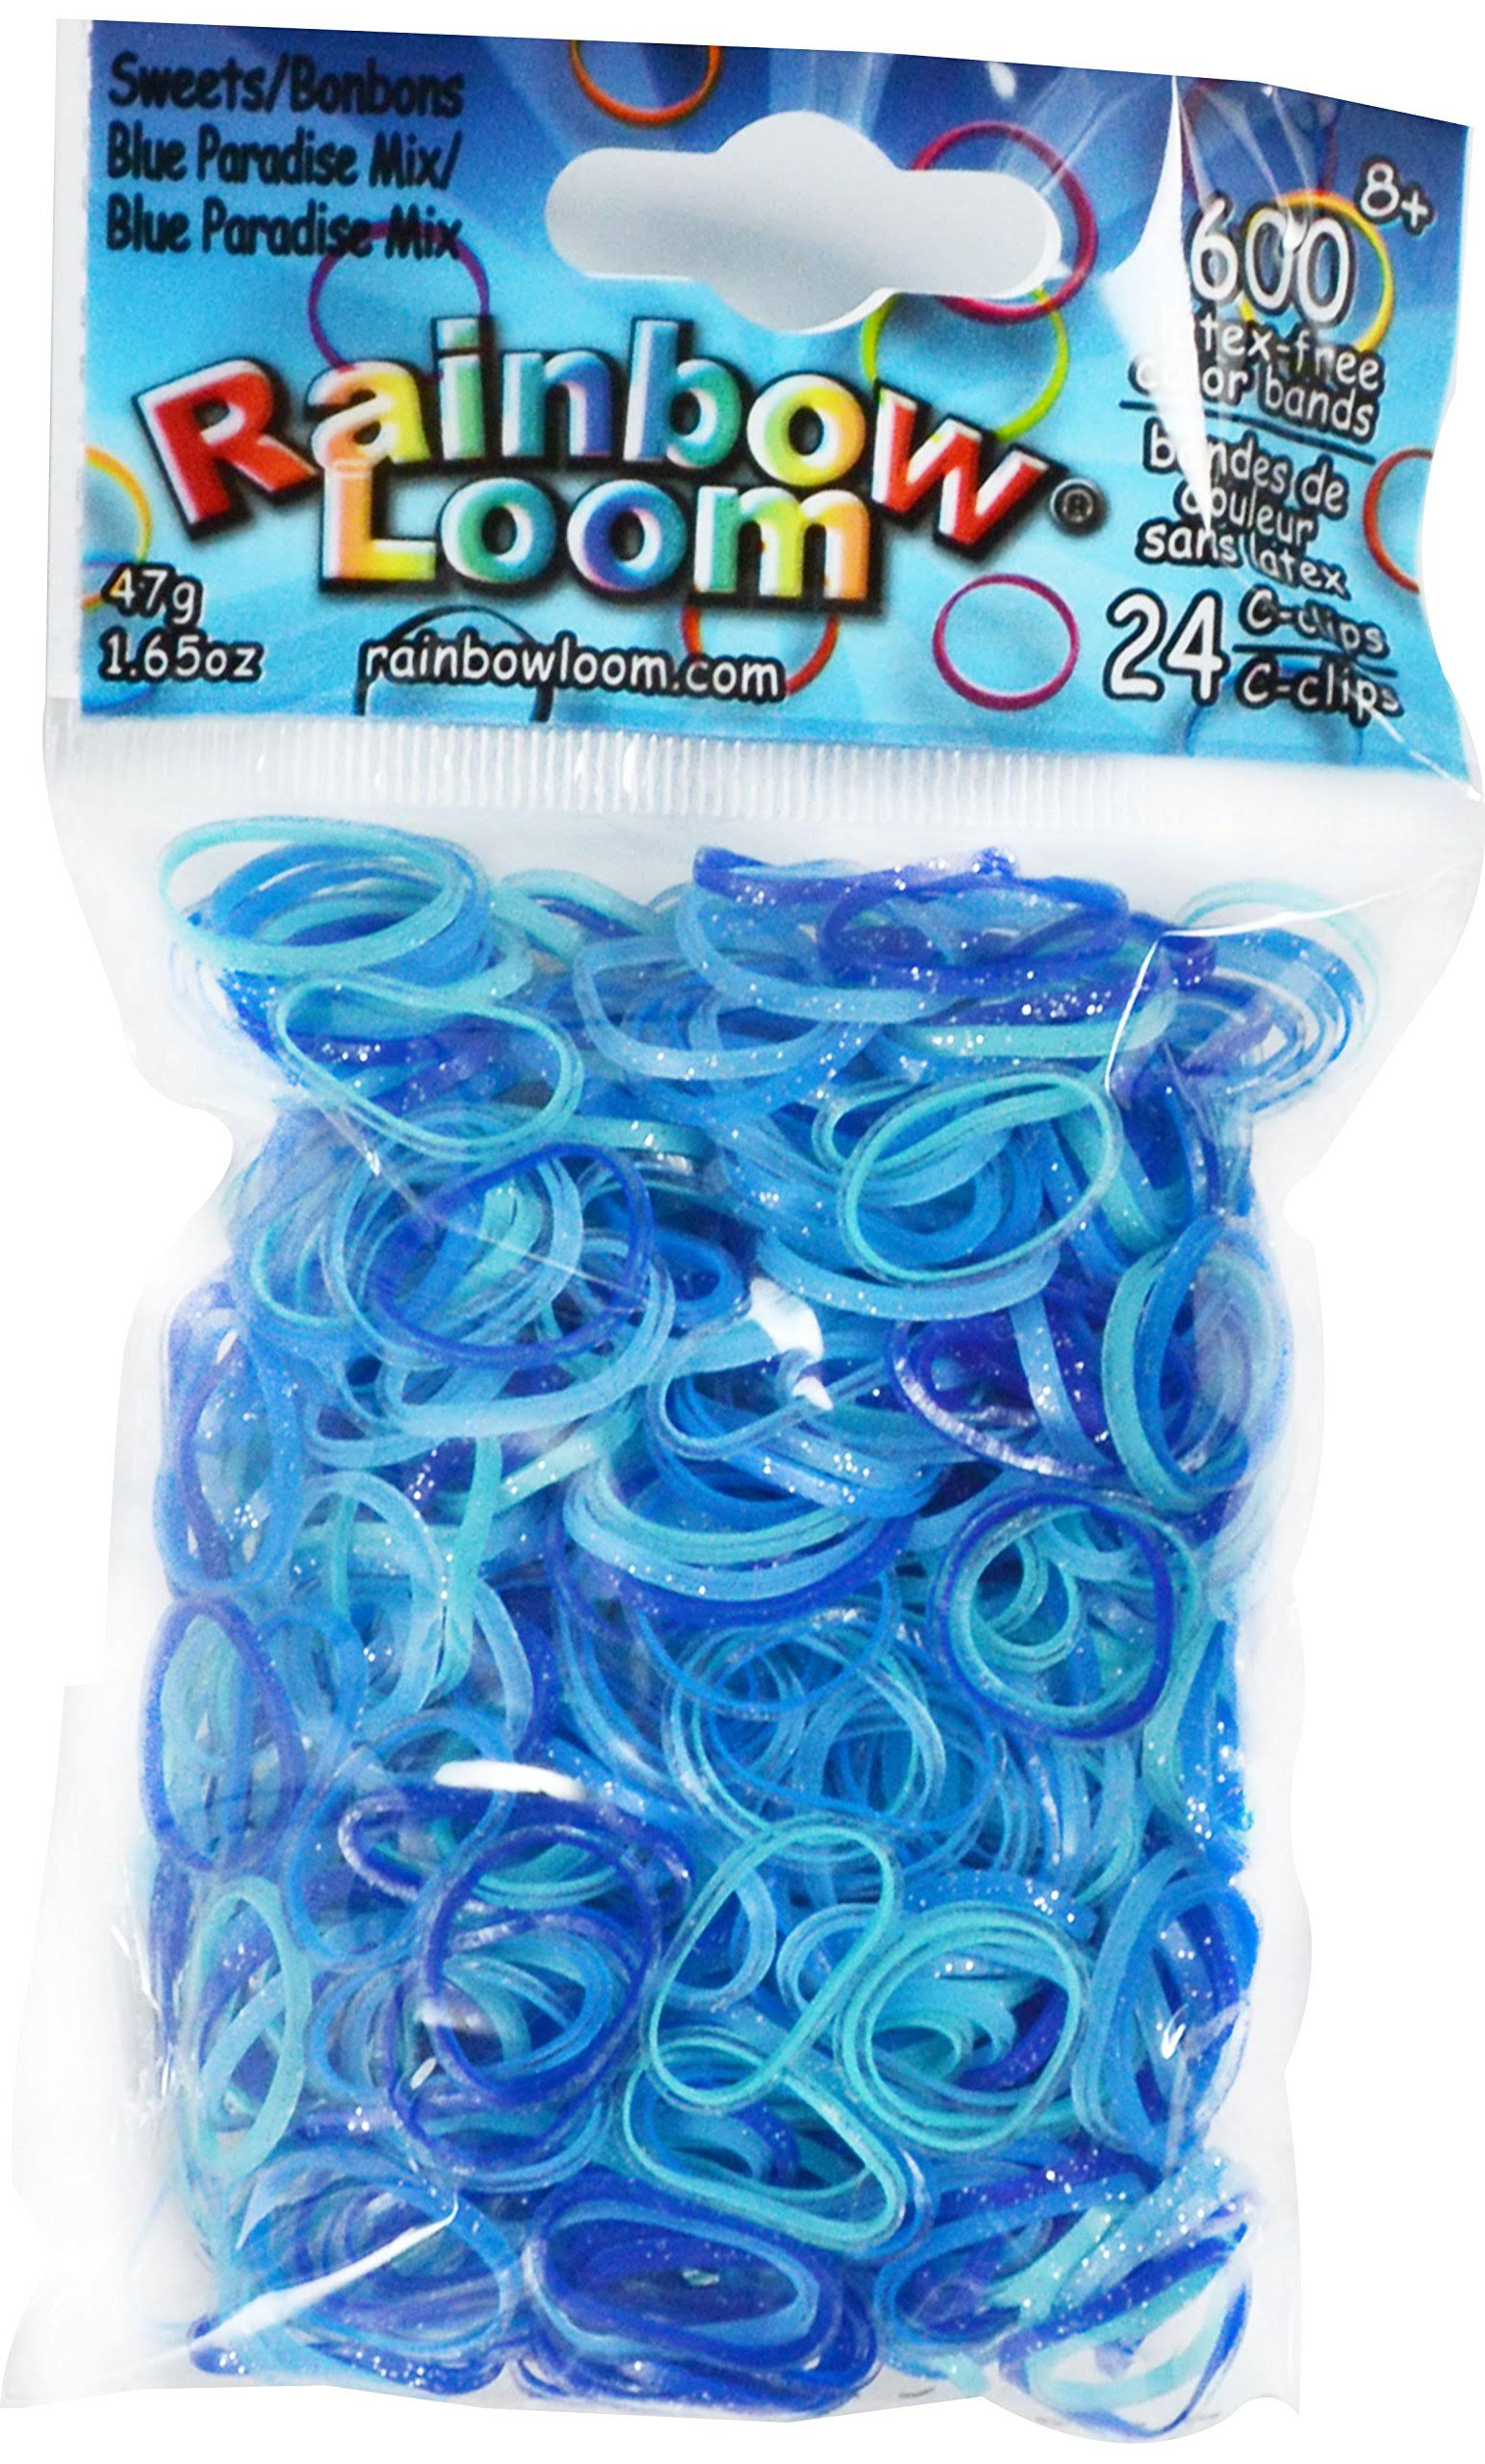 Rainbow Loom Sweets Blue Paradise Mix Bands